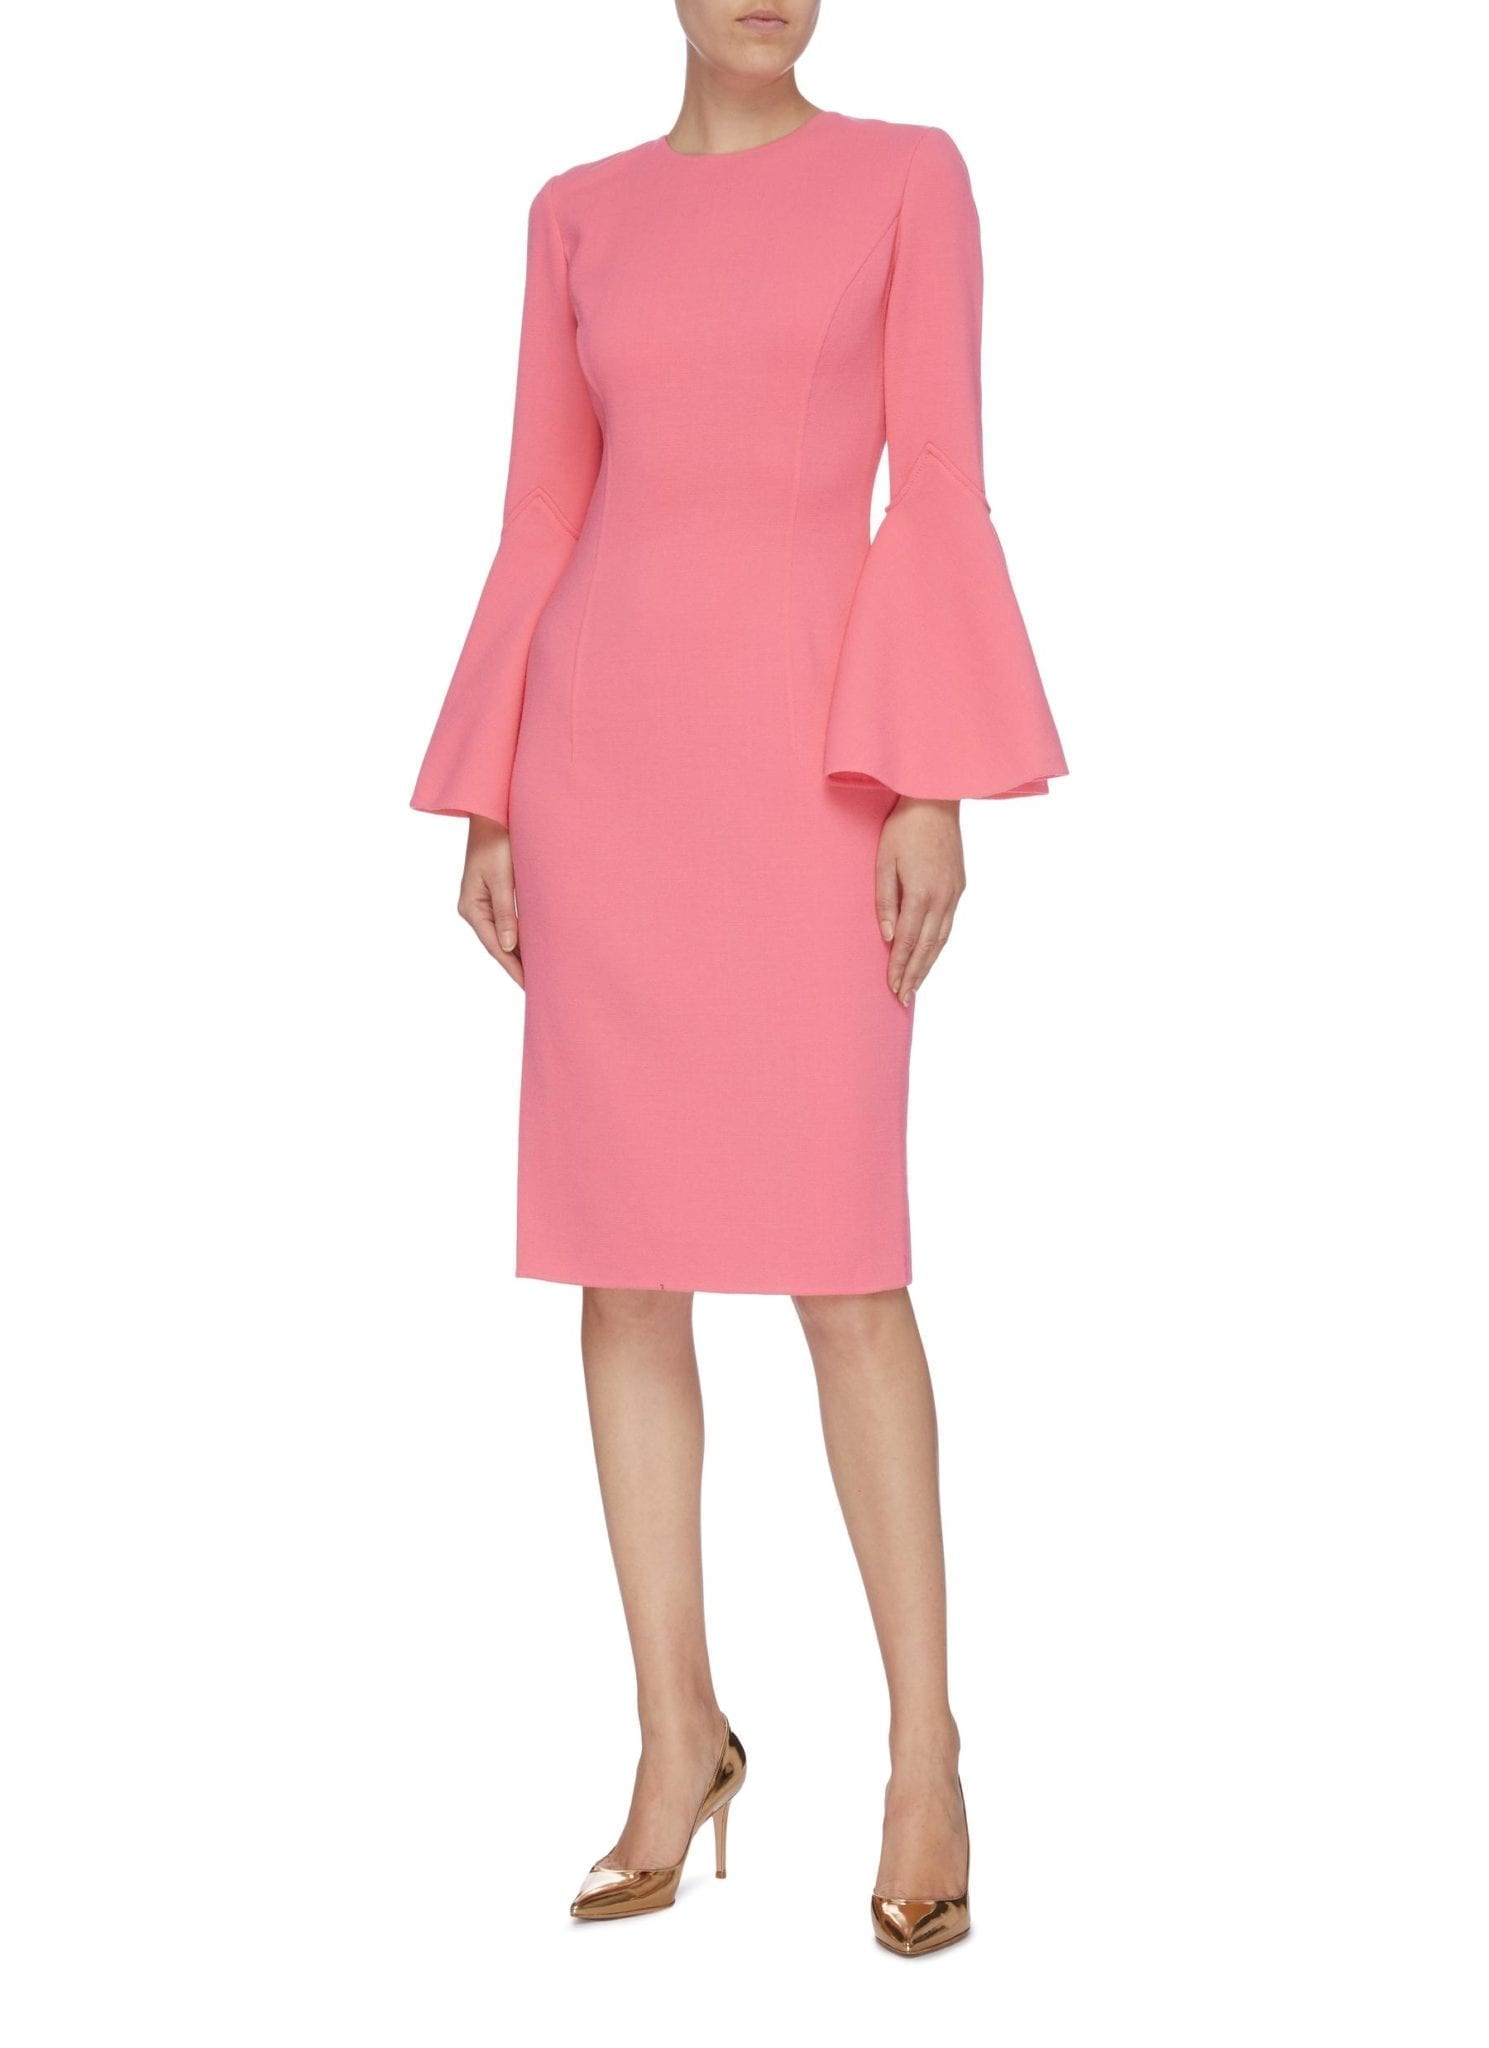 OSCAR DE LA RENTA Flared Sleeve Dress